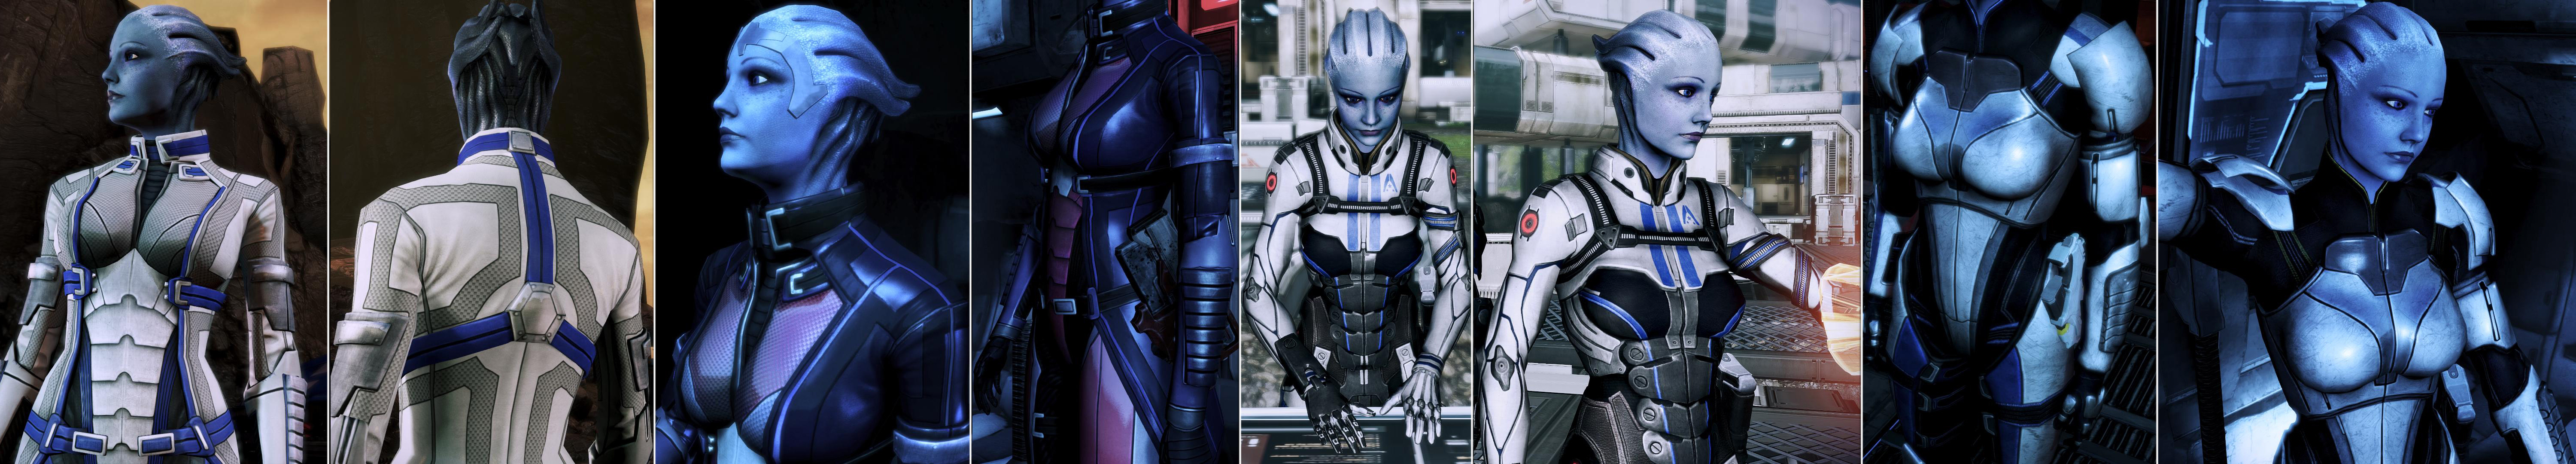 liara_collage4yjjn.jpg